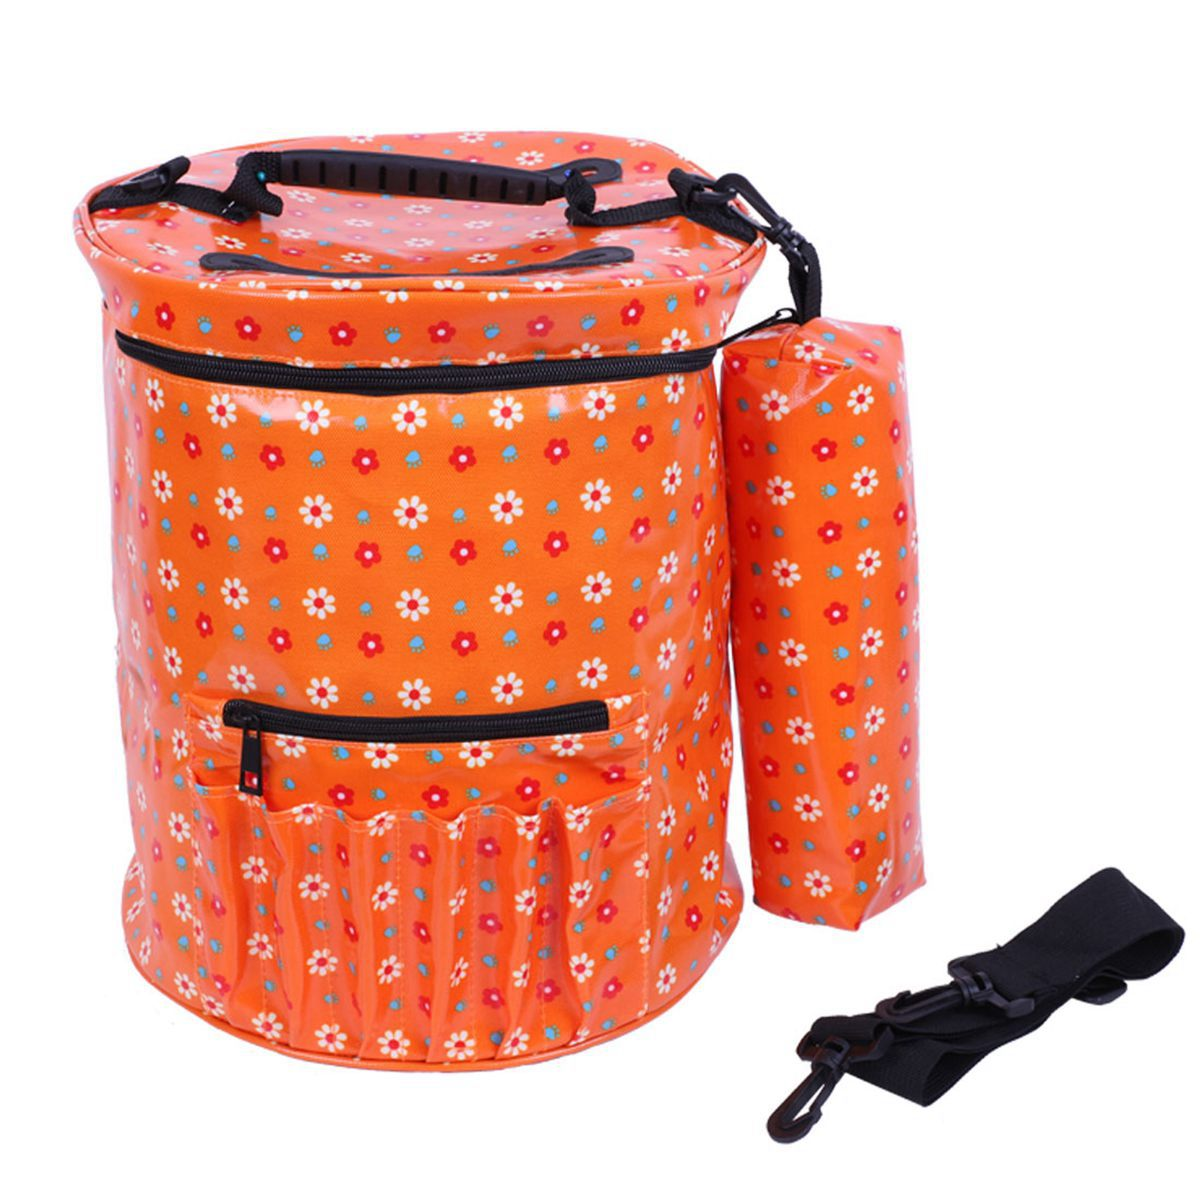 DCOS-Yarn Bag,Bloomma Waterproof Canvas Knitting Bag with Shoulder Strap Crochet and Needles Hooks Accessories Wool Storage Ba